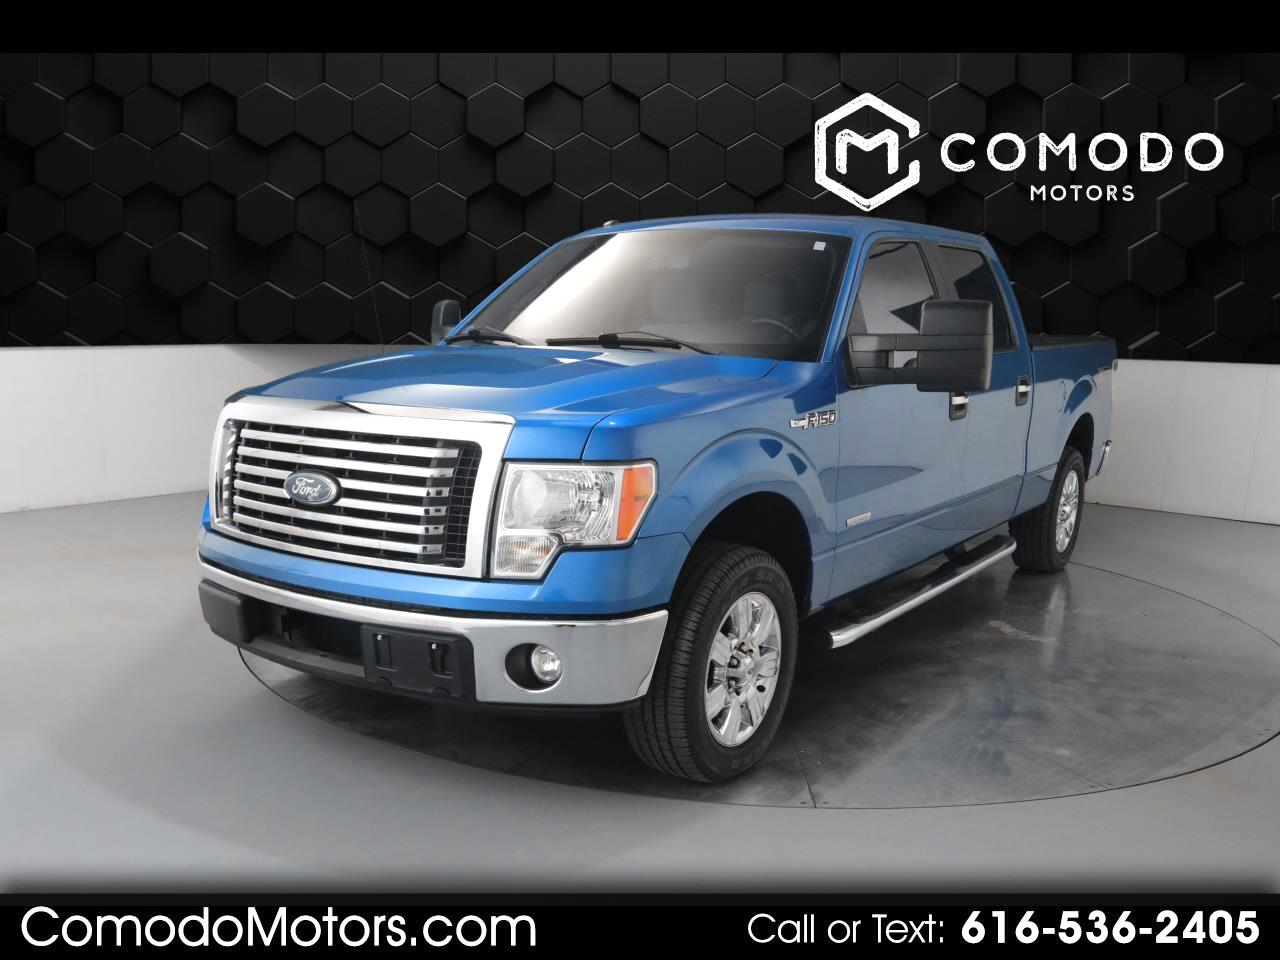 Ford F-150 XLT SuperCrew 2WD 2011